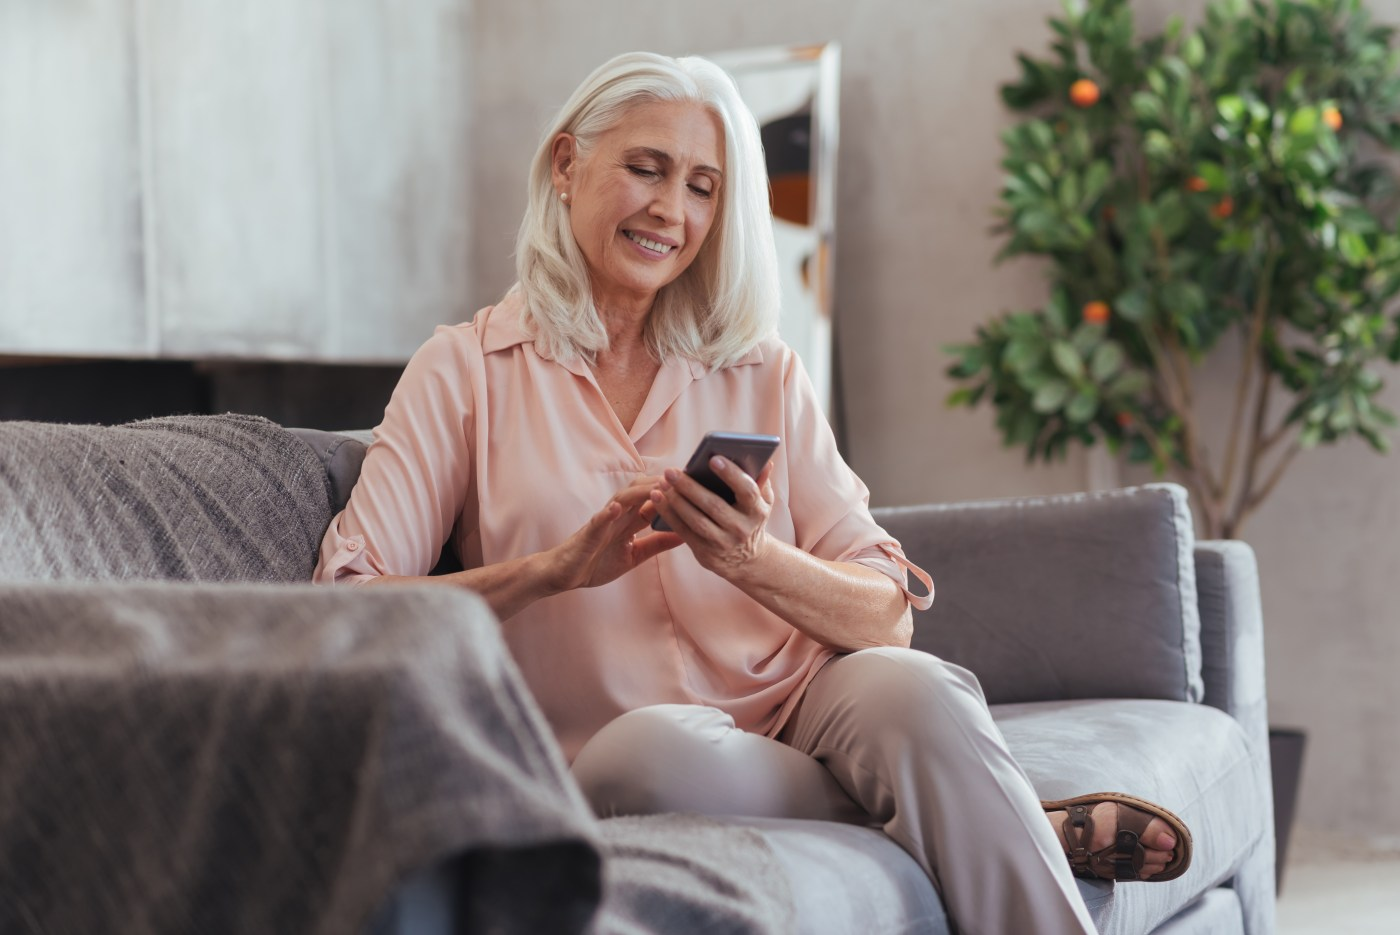 Mature woman sitting on couch using a smart phone